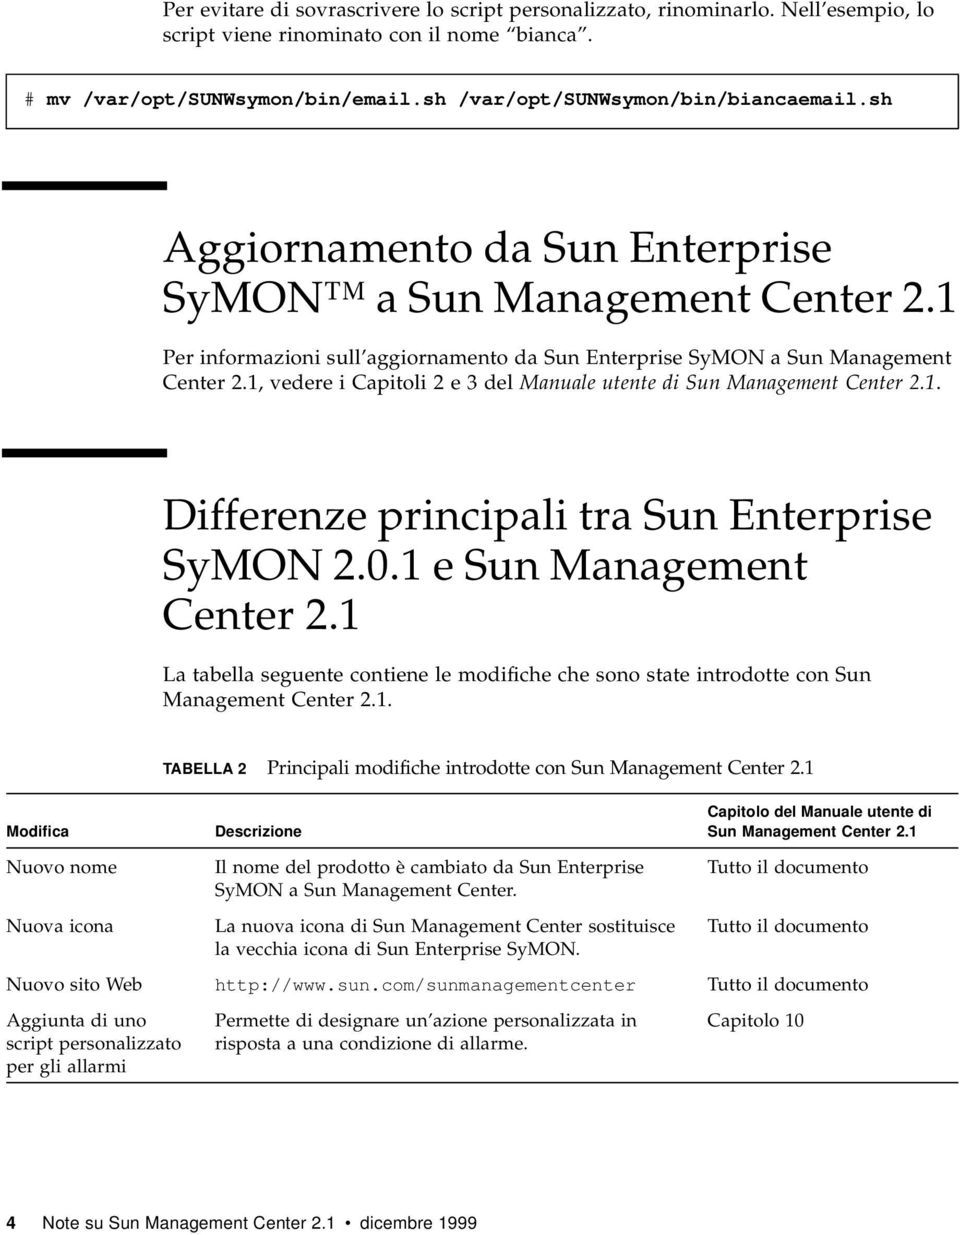 1, vedere i Capitoli 2e3delManuale utente di Sun Management Center 2.1. Differenze principali tra Sun Enterprise SyMON 2.0.1 e Sun Management Center 2.